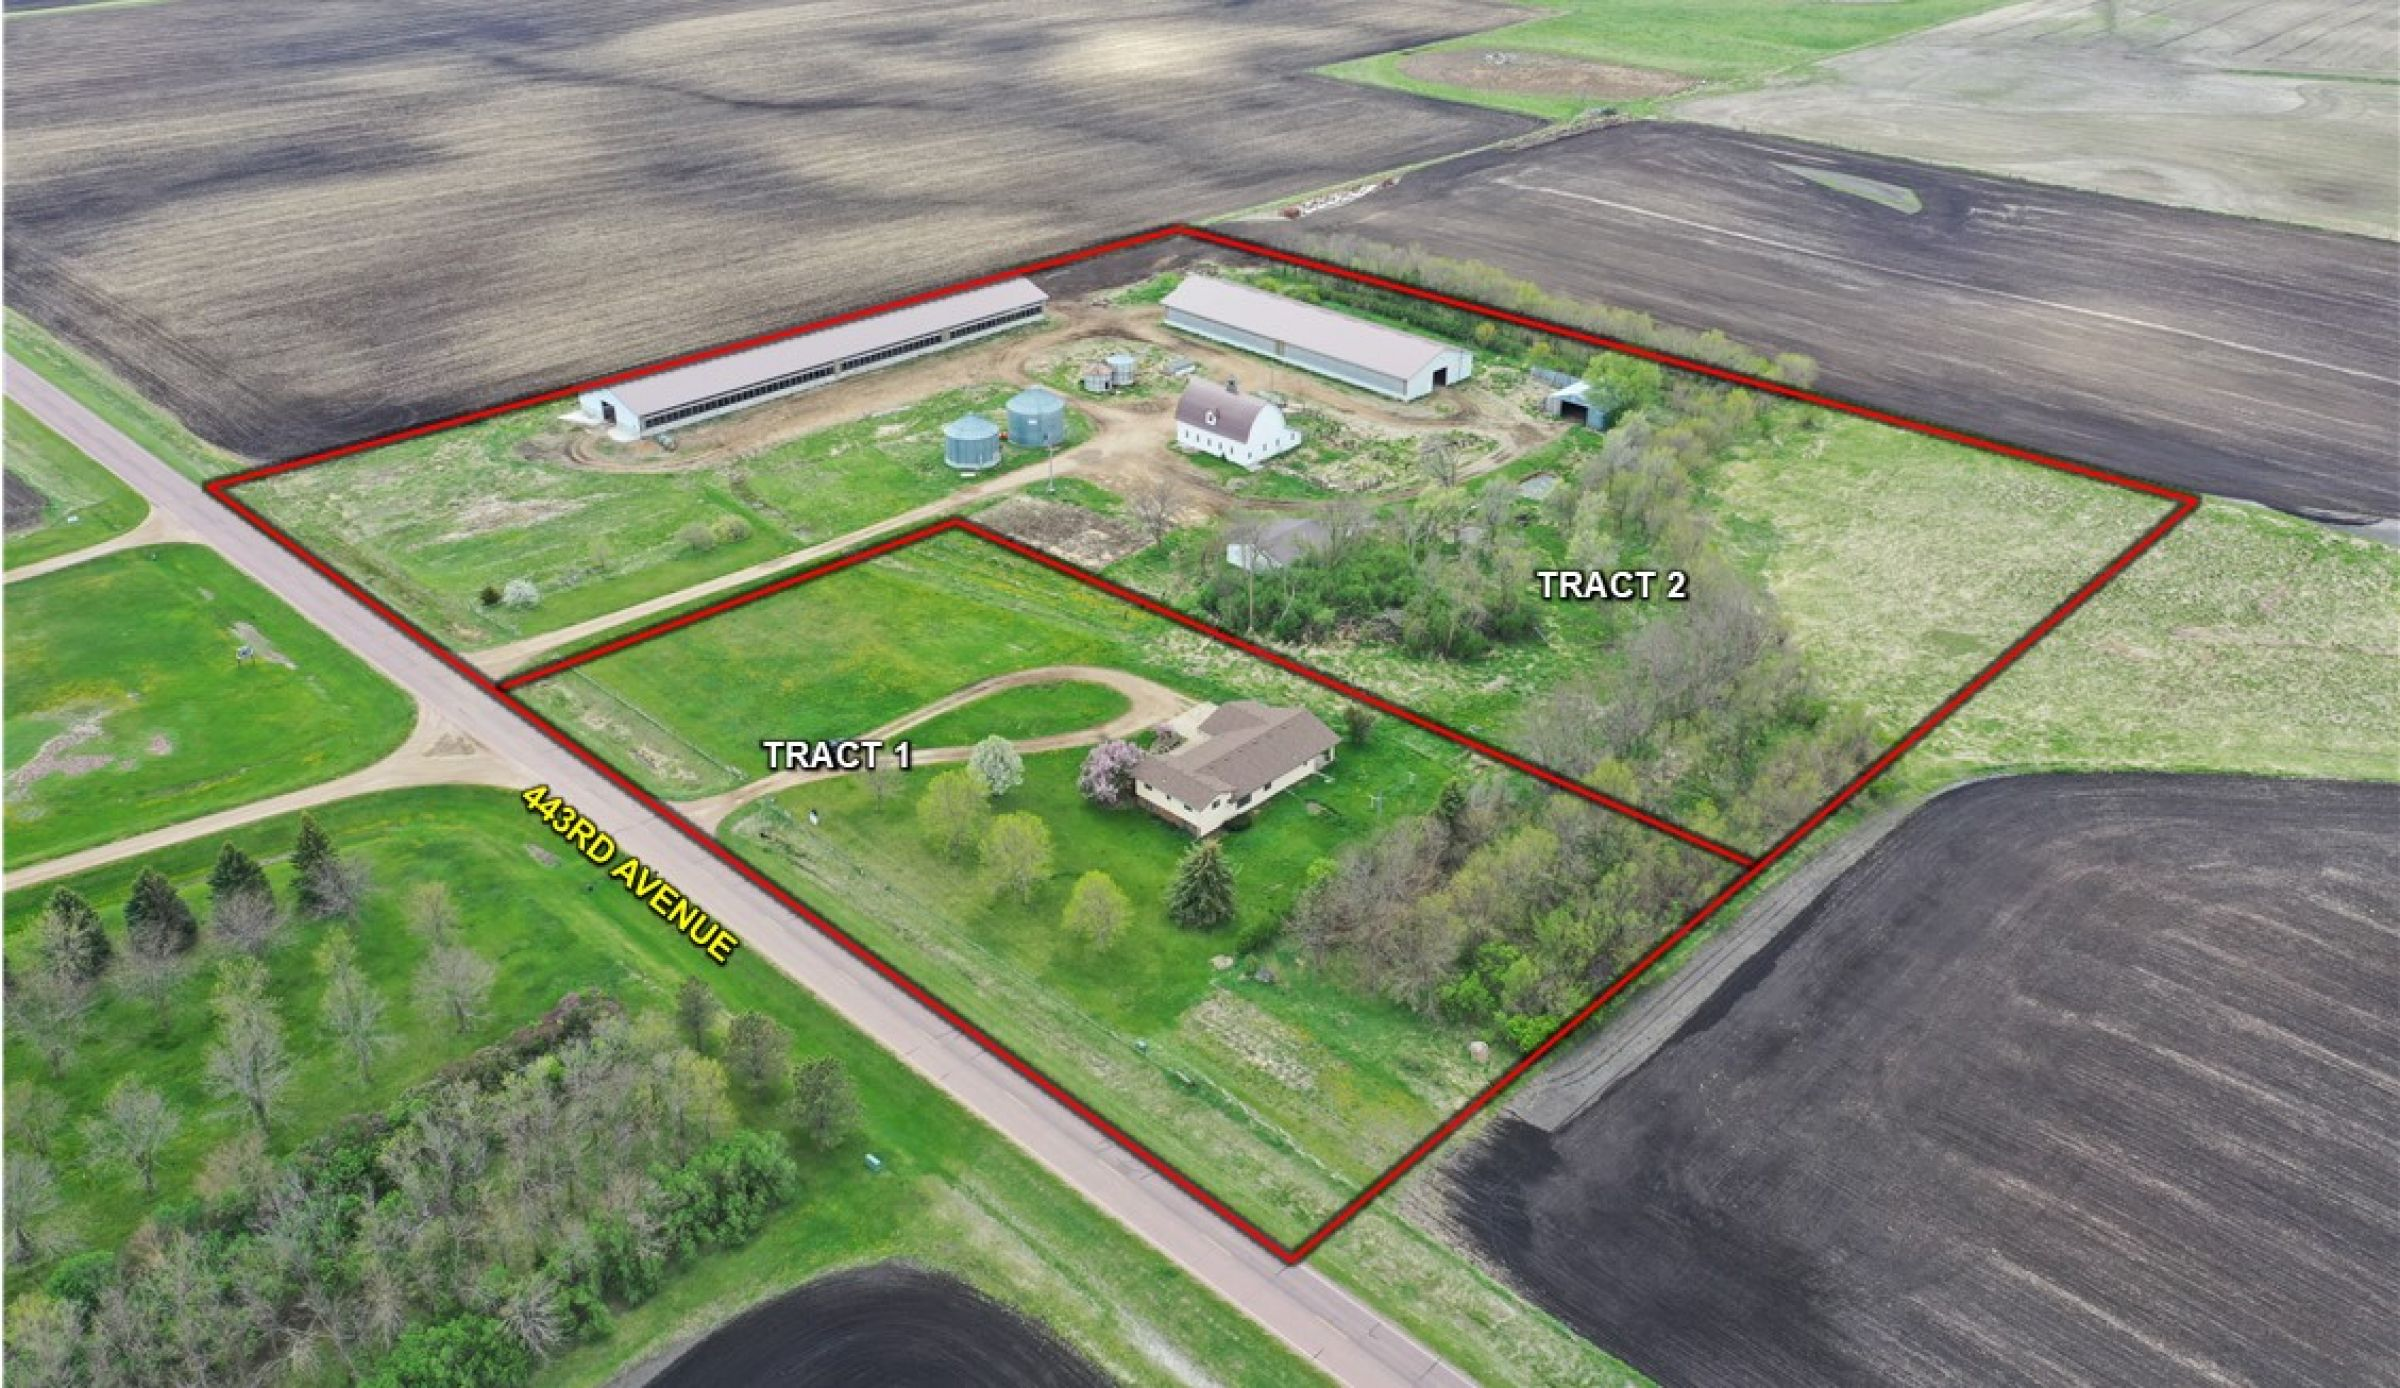 residential-auctions-land-turner-county-south-dakota-12-acres-listing-number-14971-3-2020-05-08-154911.jpg